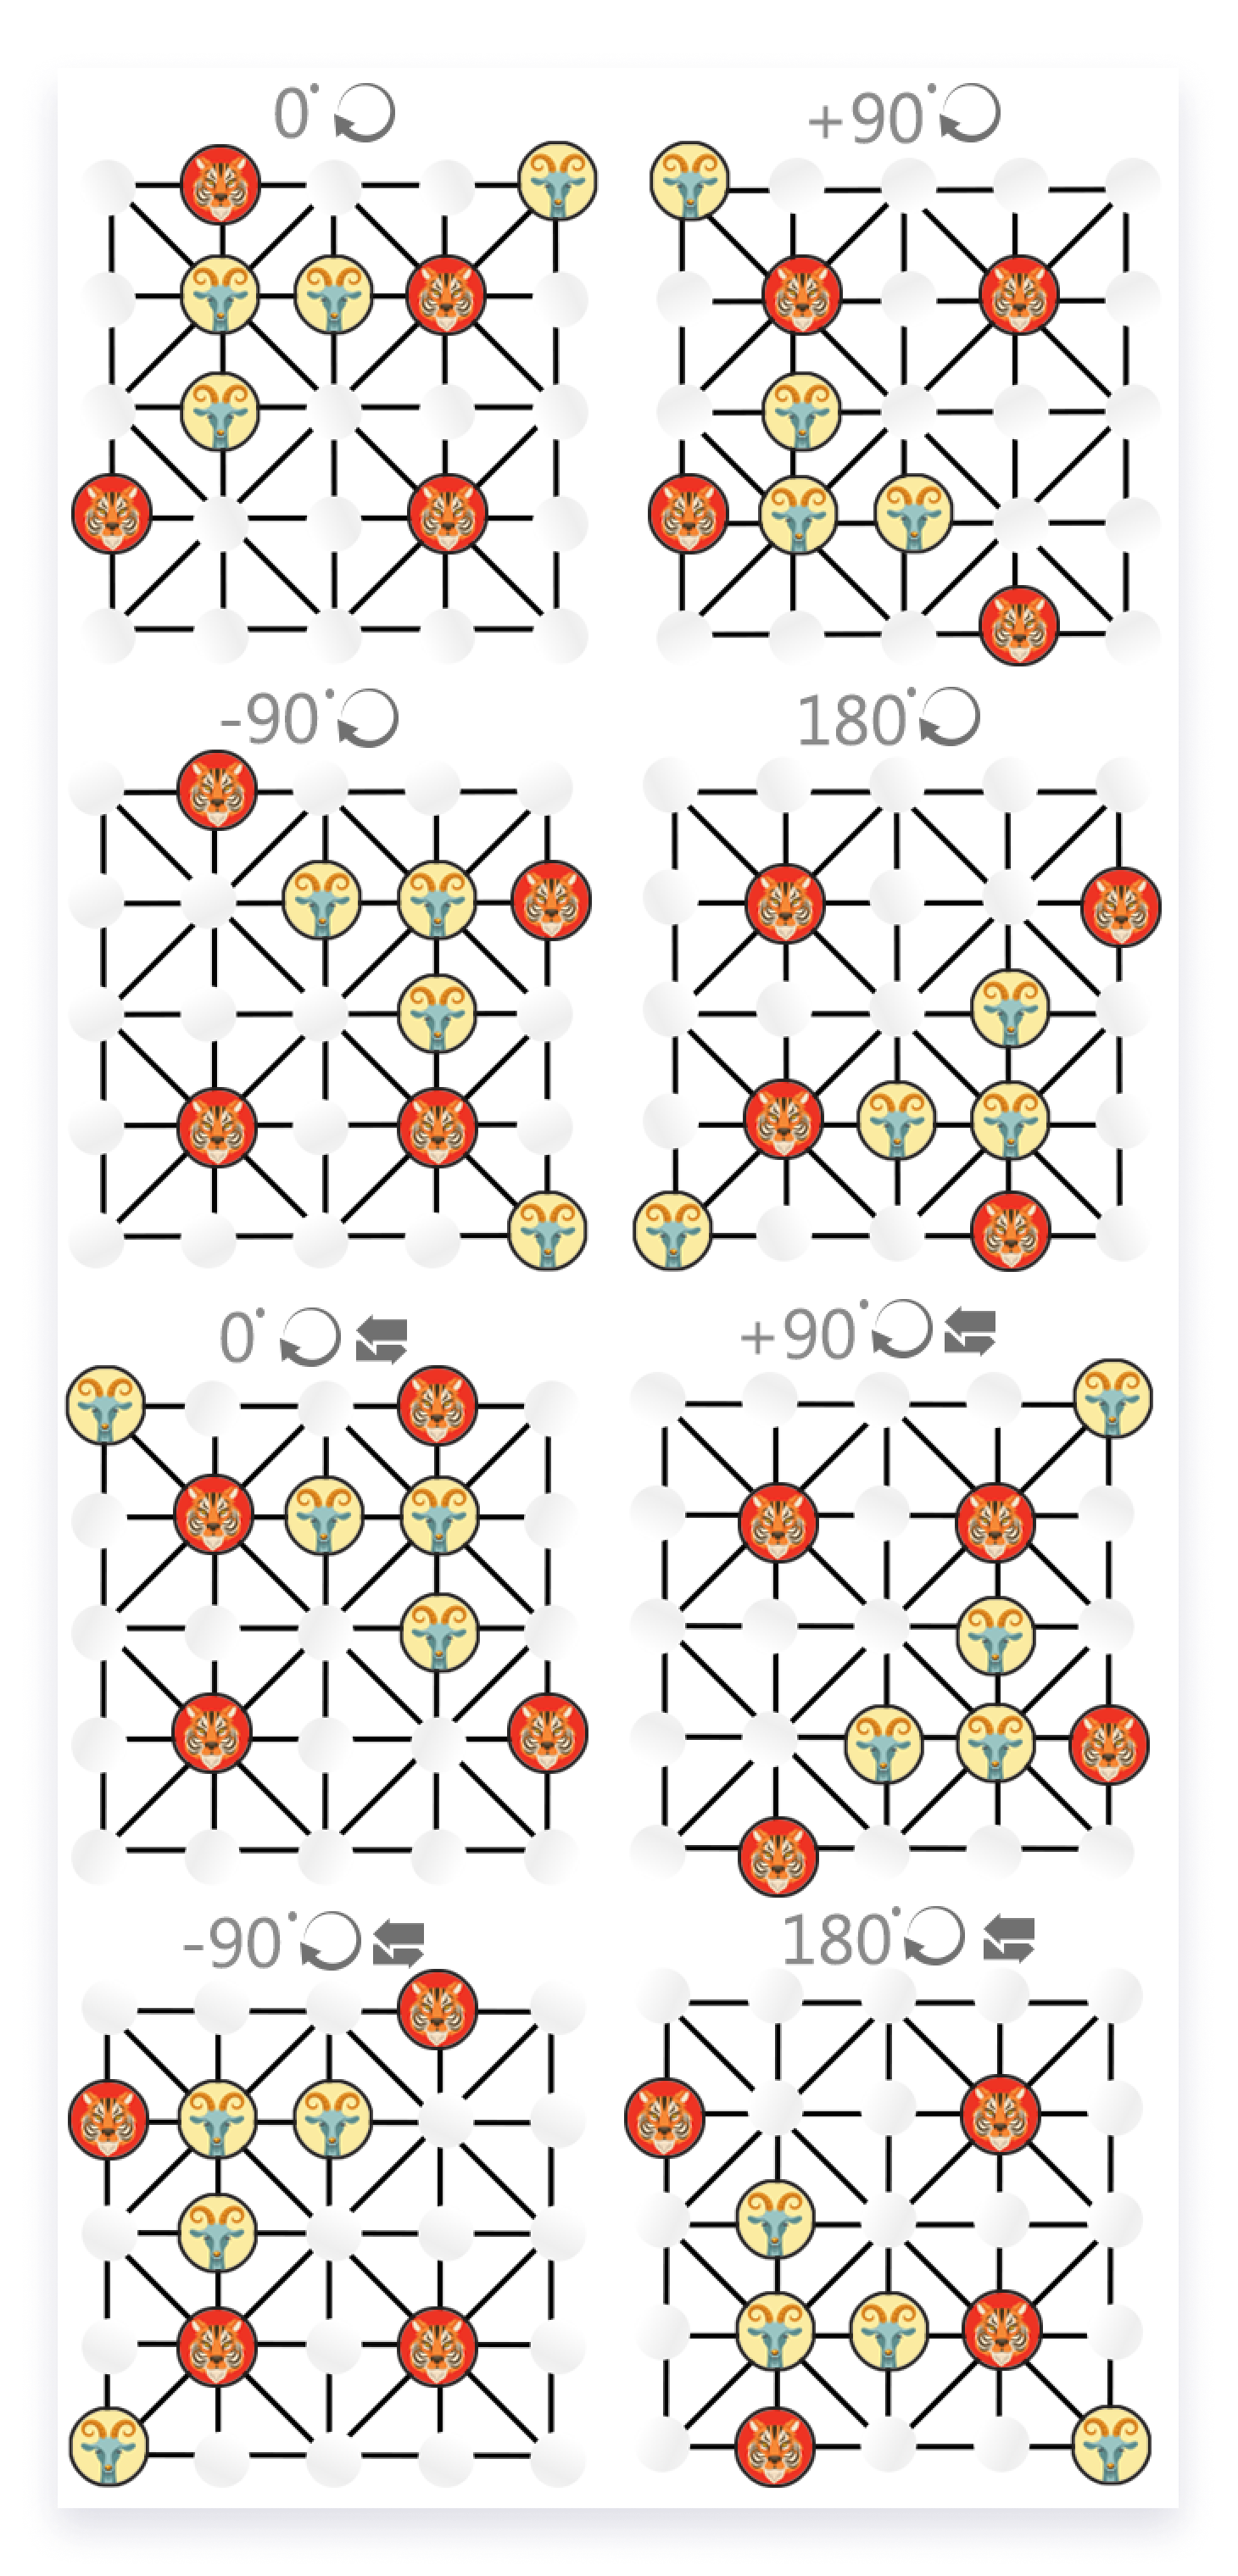 The Bagh Chal game has a rotational and a reflection symmetry.